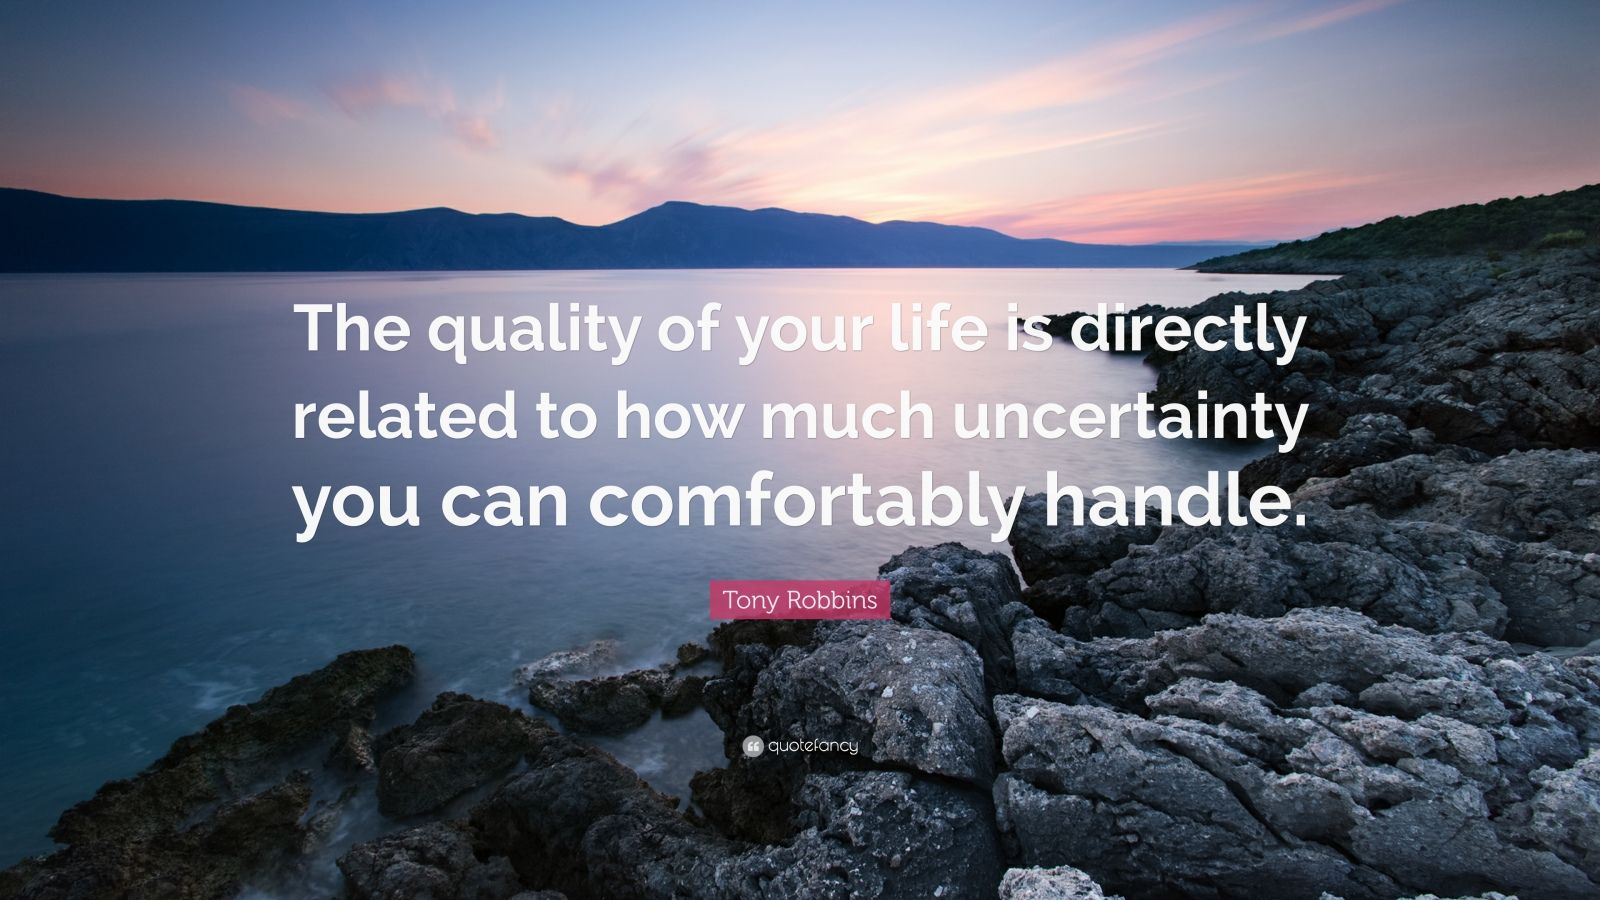 """Tony Robbins Quote: """"The quality of your life is directly related to how much uncertainty you can comfortably handle."""""""